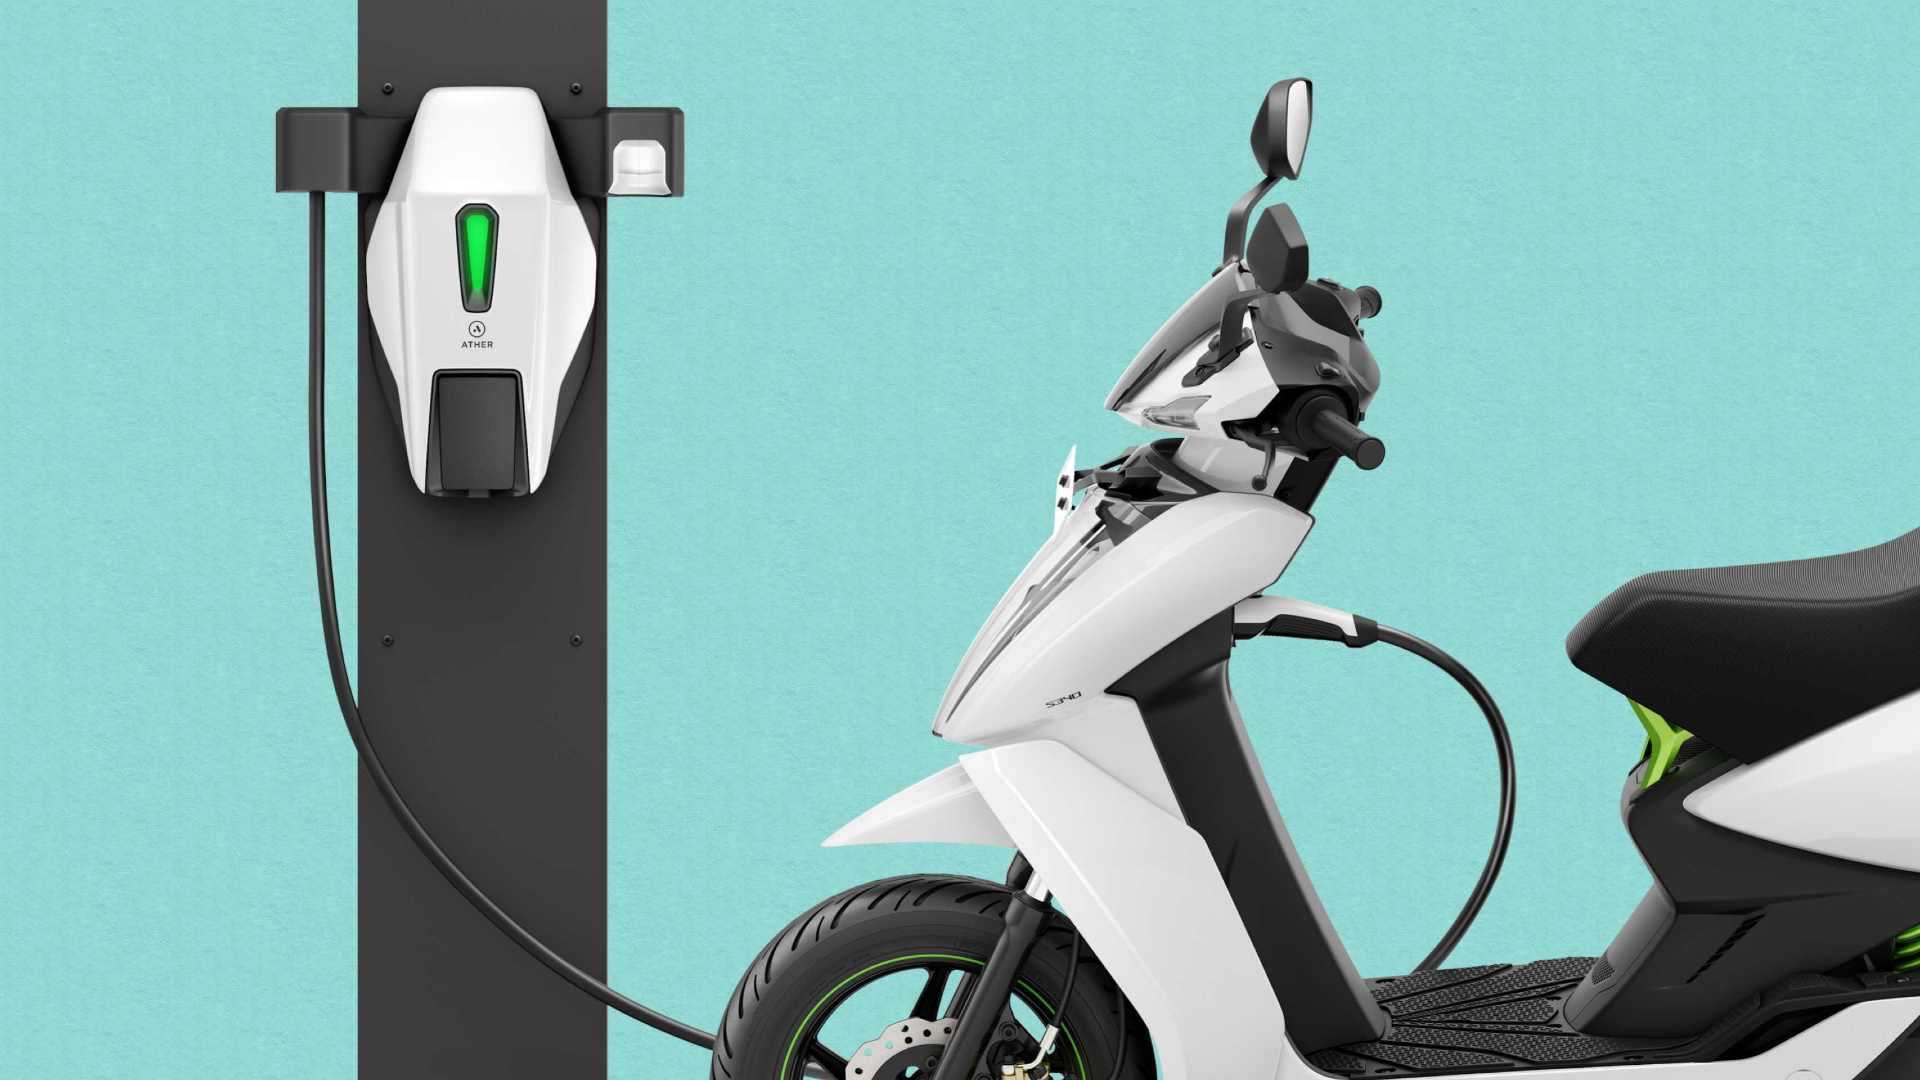 The Ather Grid fast charger has a 3 kW power output. Image: Ather Energy